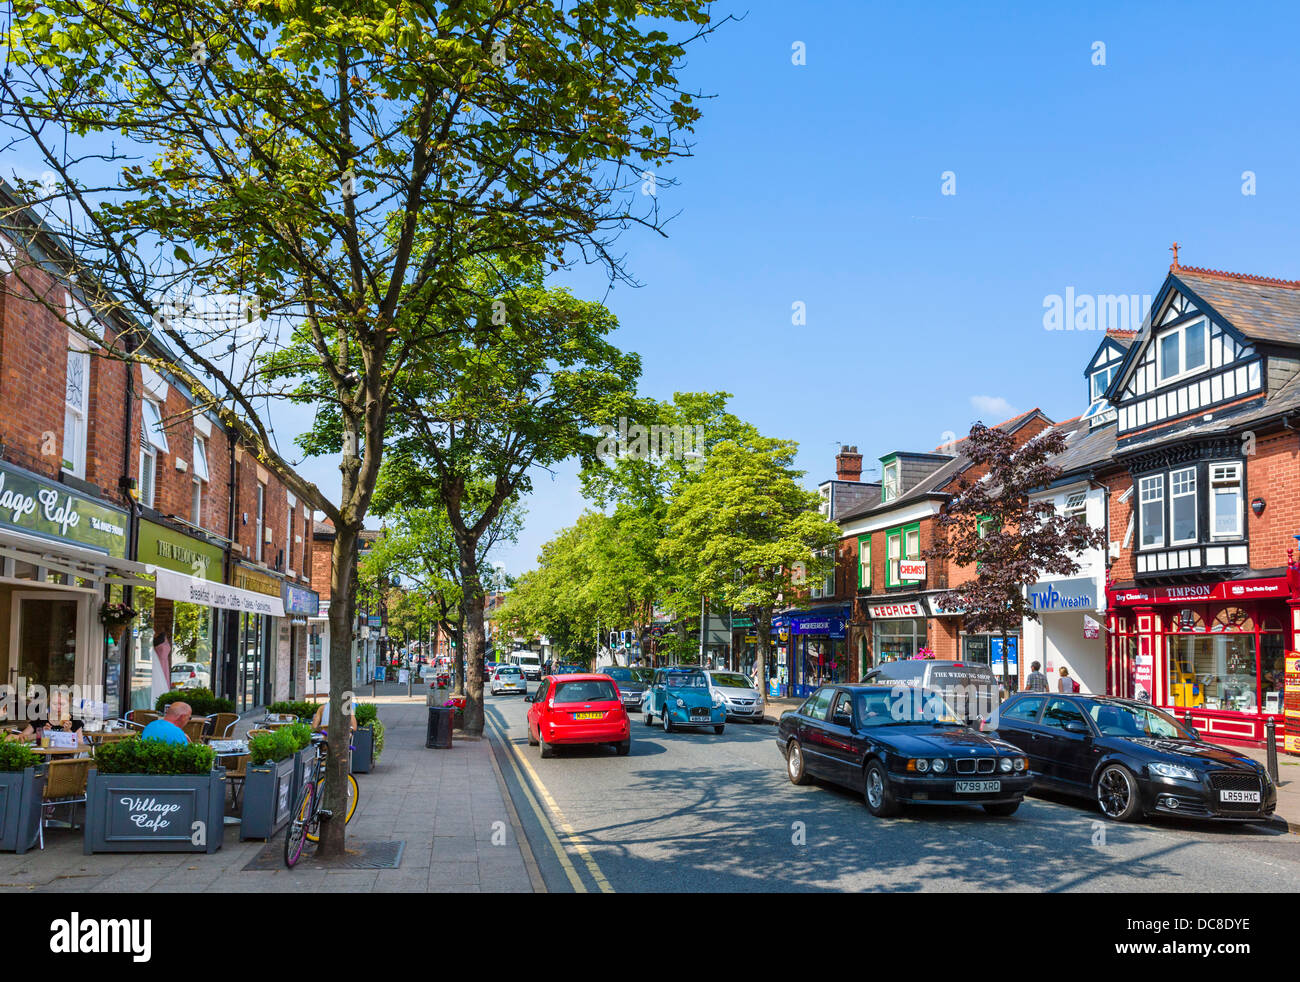 Cafe and shops on the High Street ( London Road ) in the village centre, Alderley Edge, Cheshire, England, UK - Stock Image